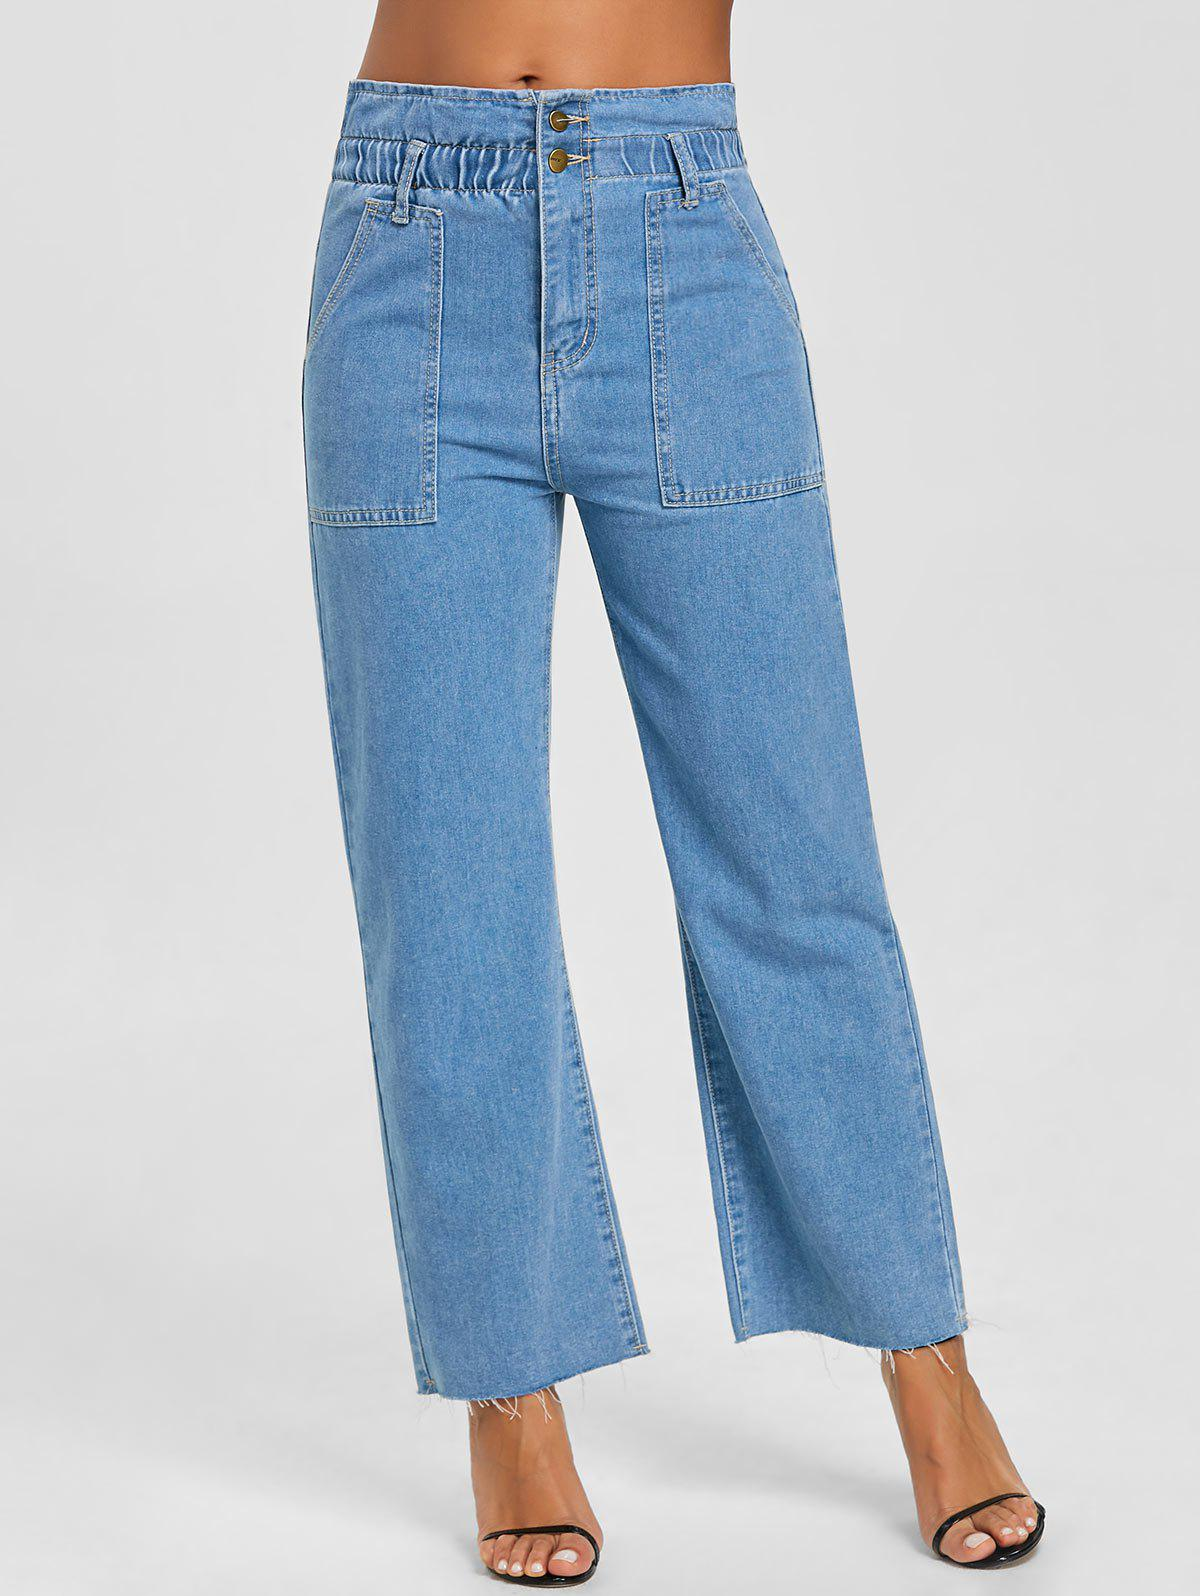 Wide Leg Raw Hem Jeans - LIGHT BLUE M